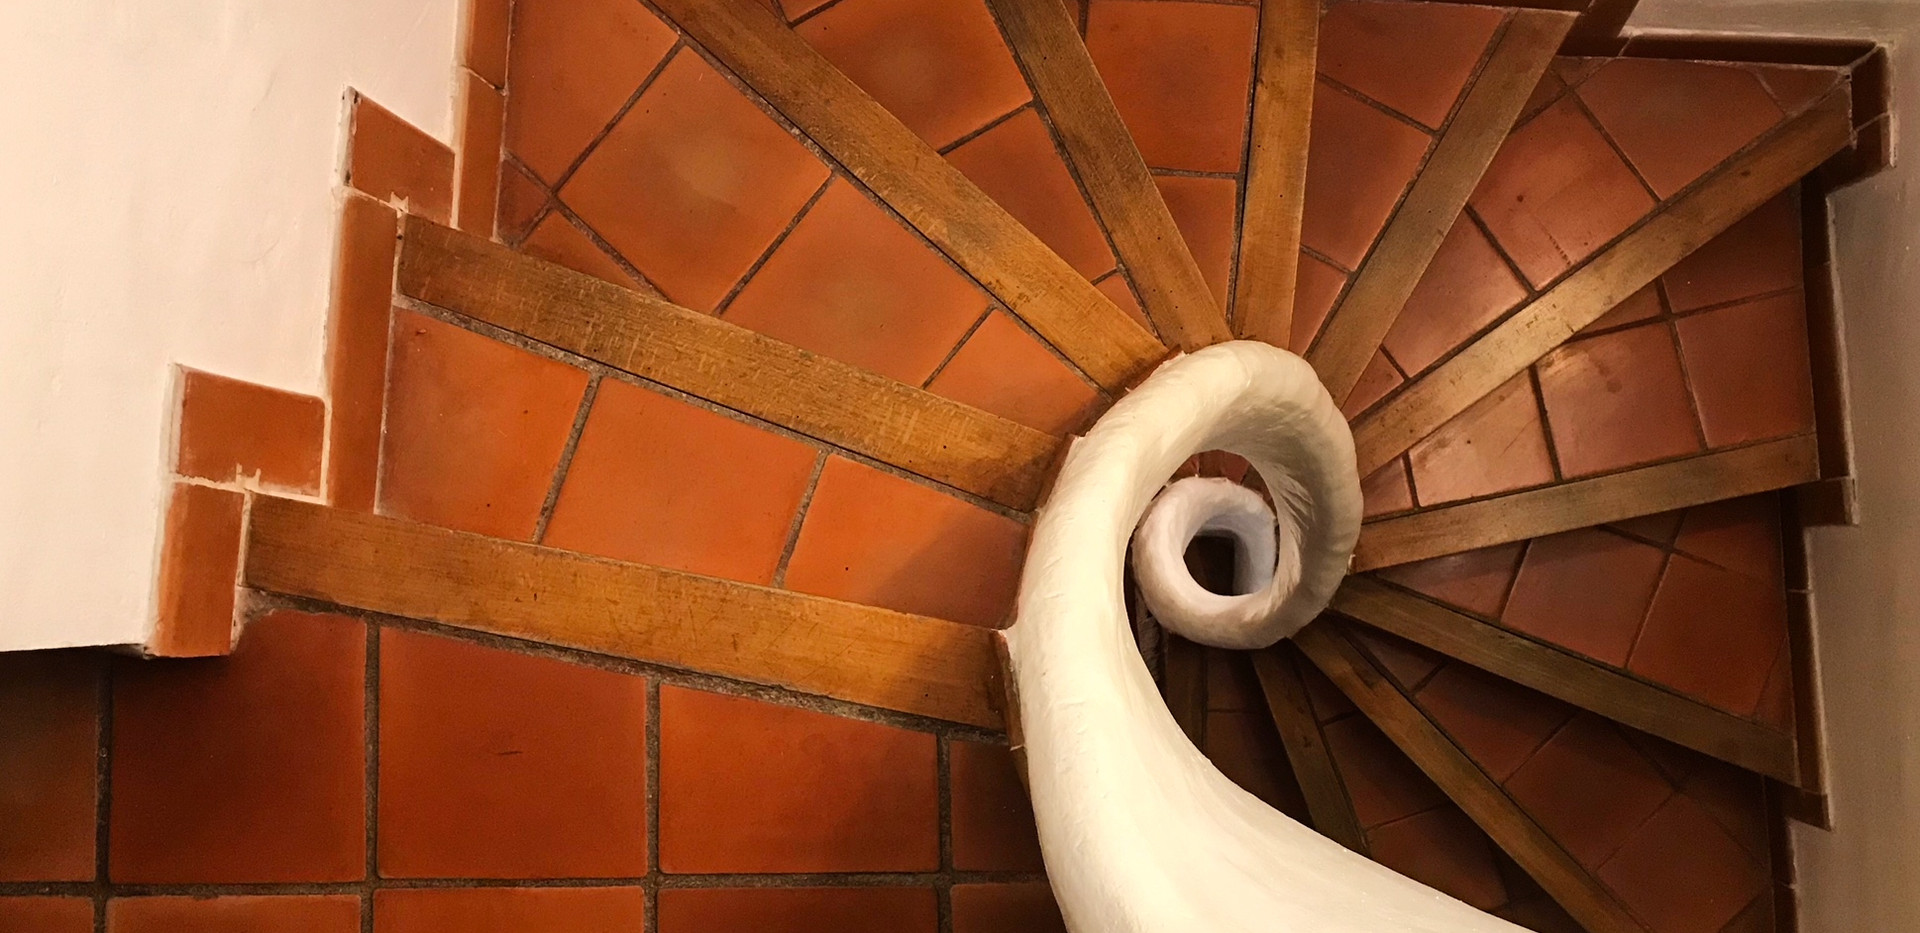 The escargot staircase in our house.